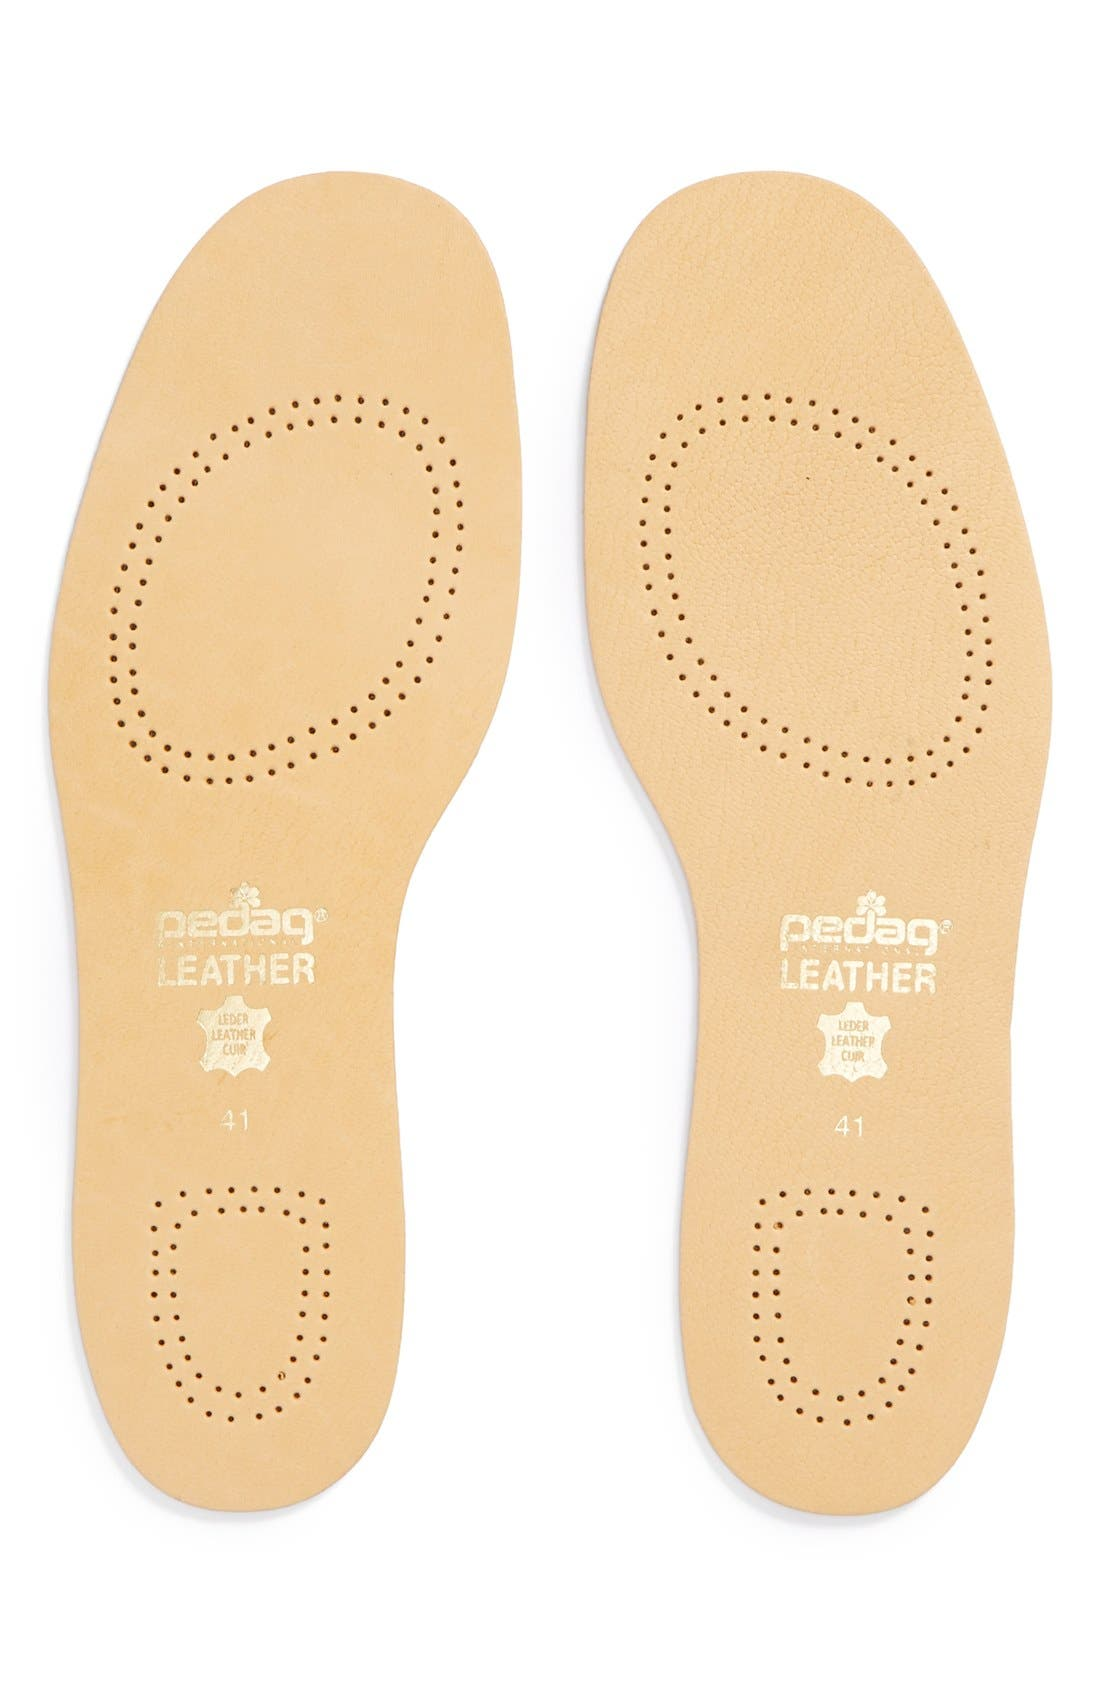 PEDAG Leather Insole